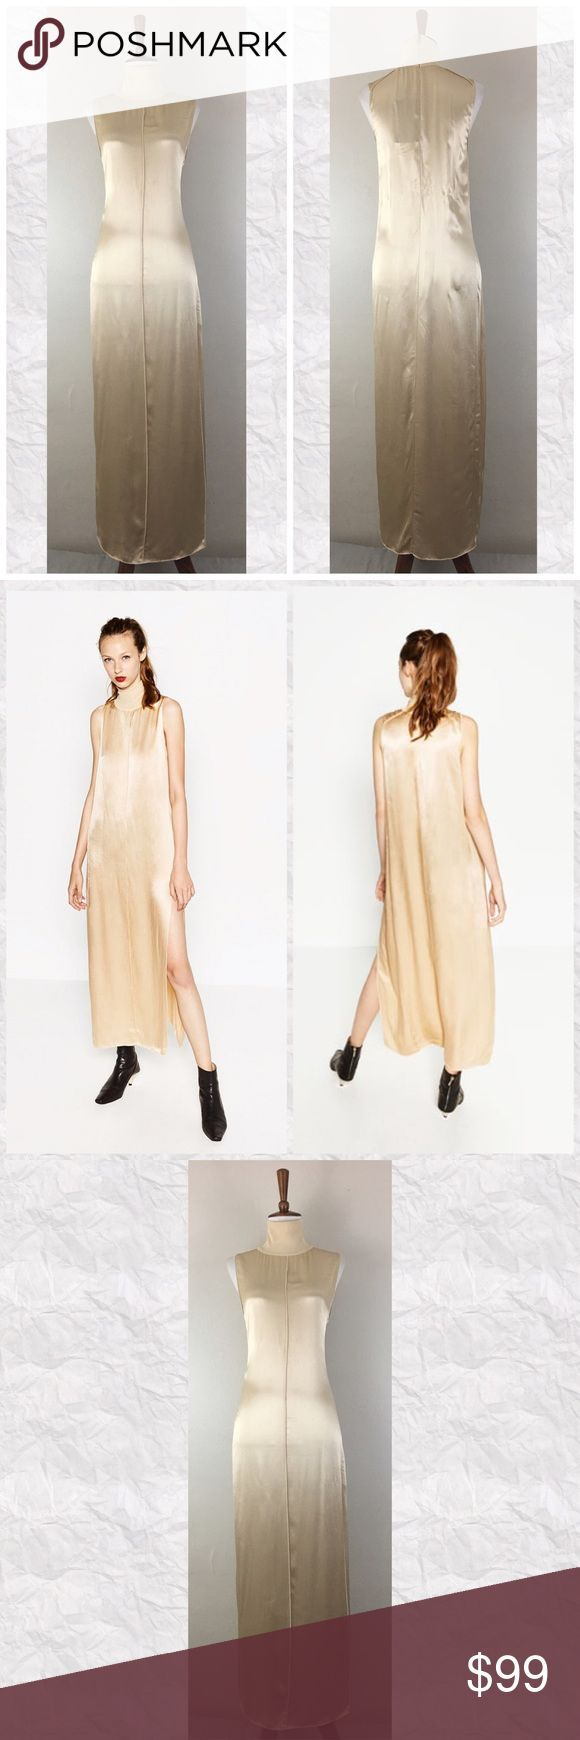 """Zara Gold High Neck Sateen Maxi Dress *Condition: NWT Faint smudge at hem line from being in the store (Photo 7) and a small flaw in netting (Photo 6) *Tag reads M but may run a bit small in my opinion  *High Neck  *Silhouette: Maxi  *Side slit  *Closure: Back zip  *Pockets: No  *Main Fabric: 100% Viscose  *Secondary Fabric: 100% Polyester  *Care: Machine wash according to instruction *Measurements are approx & taken lying flat *Bust: 36"""" *Slit: 26"""" *Shoulder to Hem: 53"""" *Stored in…"""